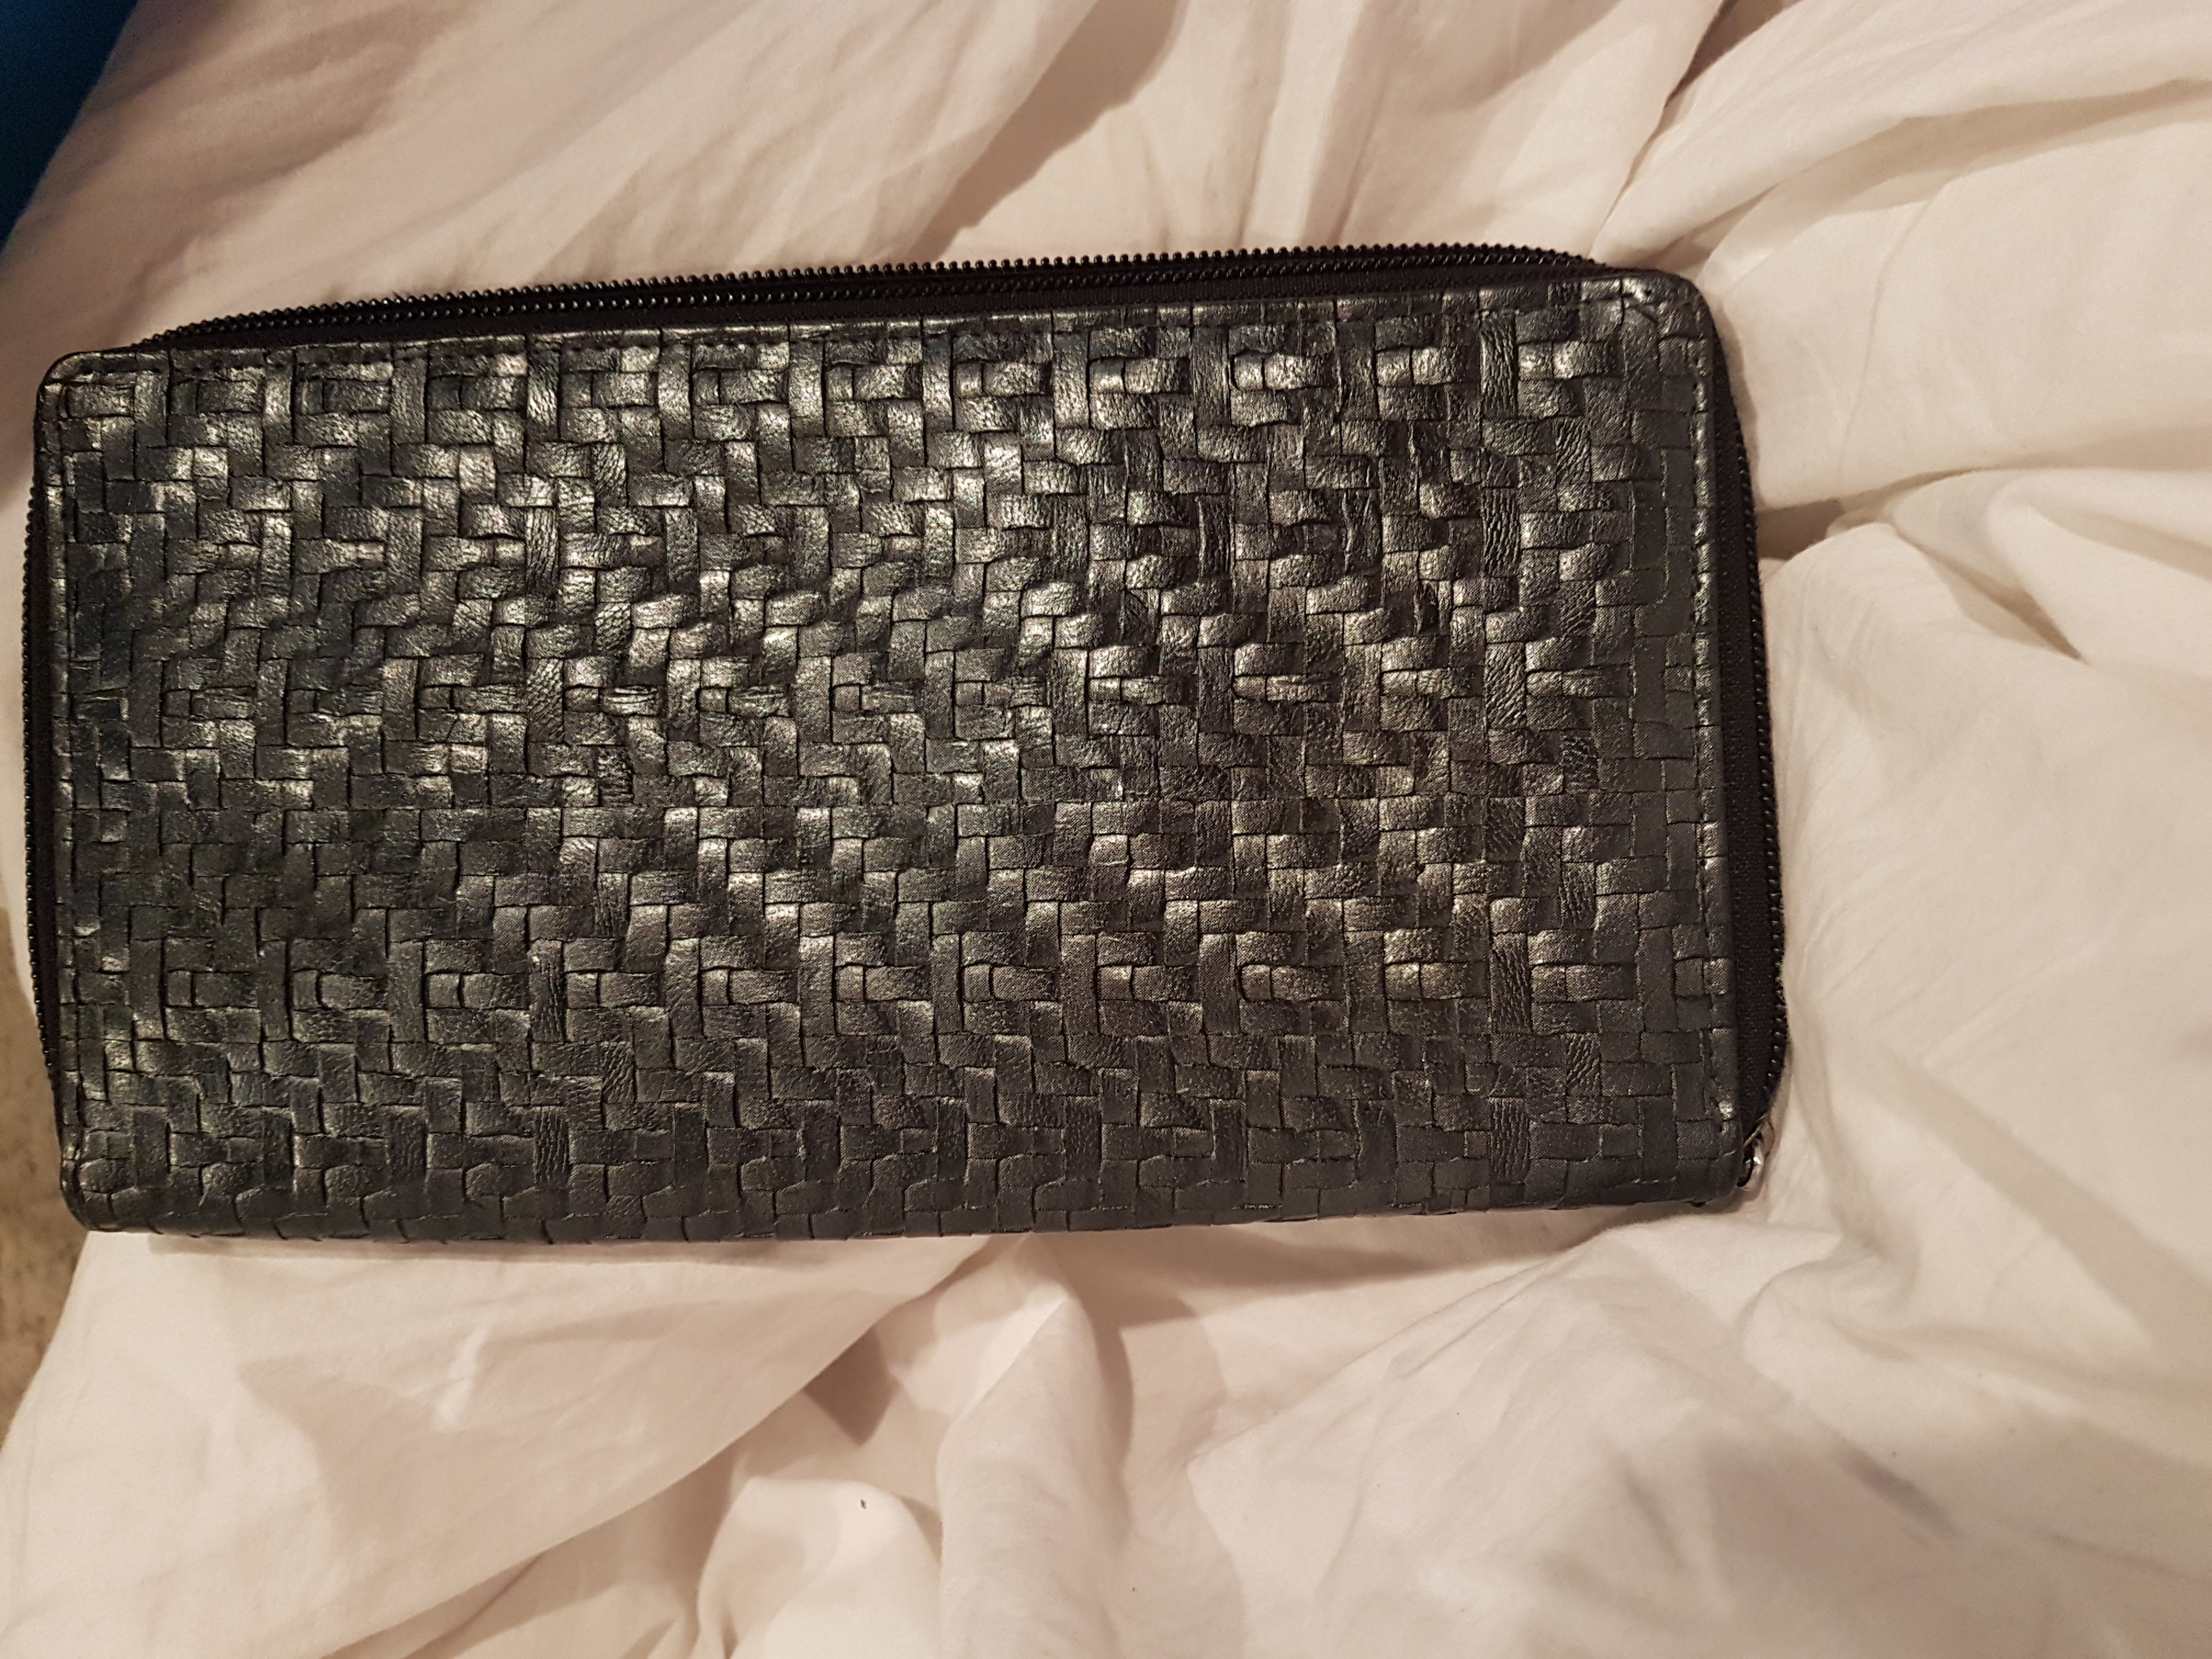 Franc cheque wallet